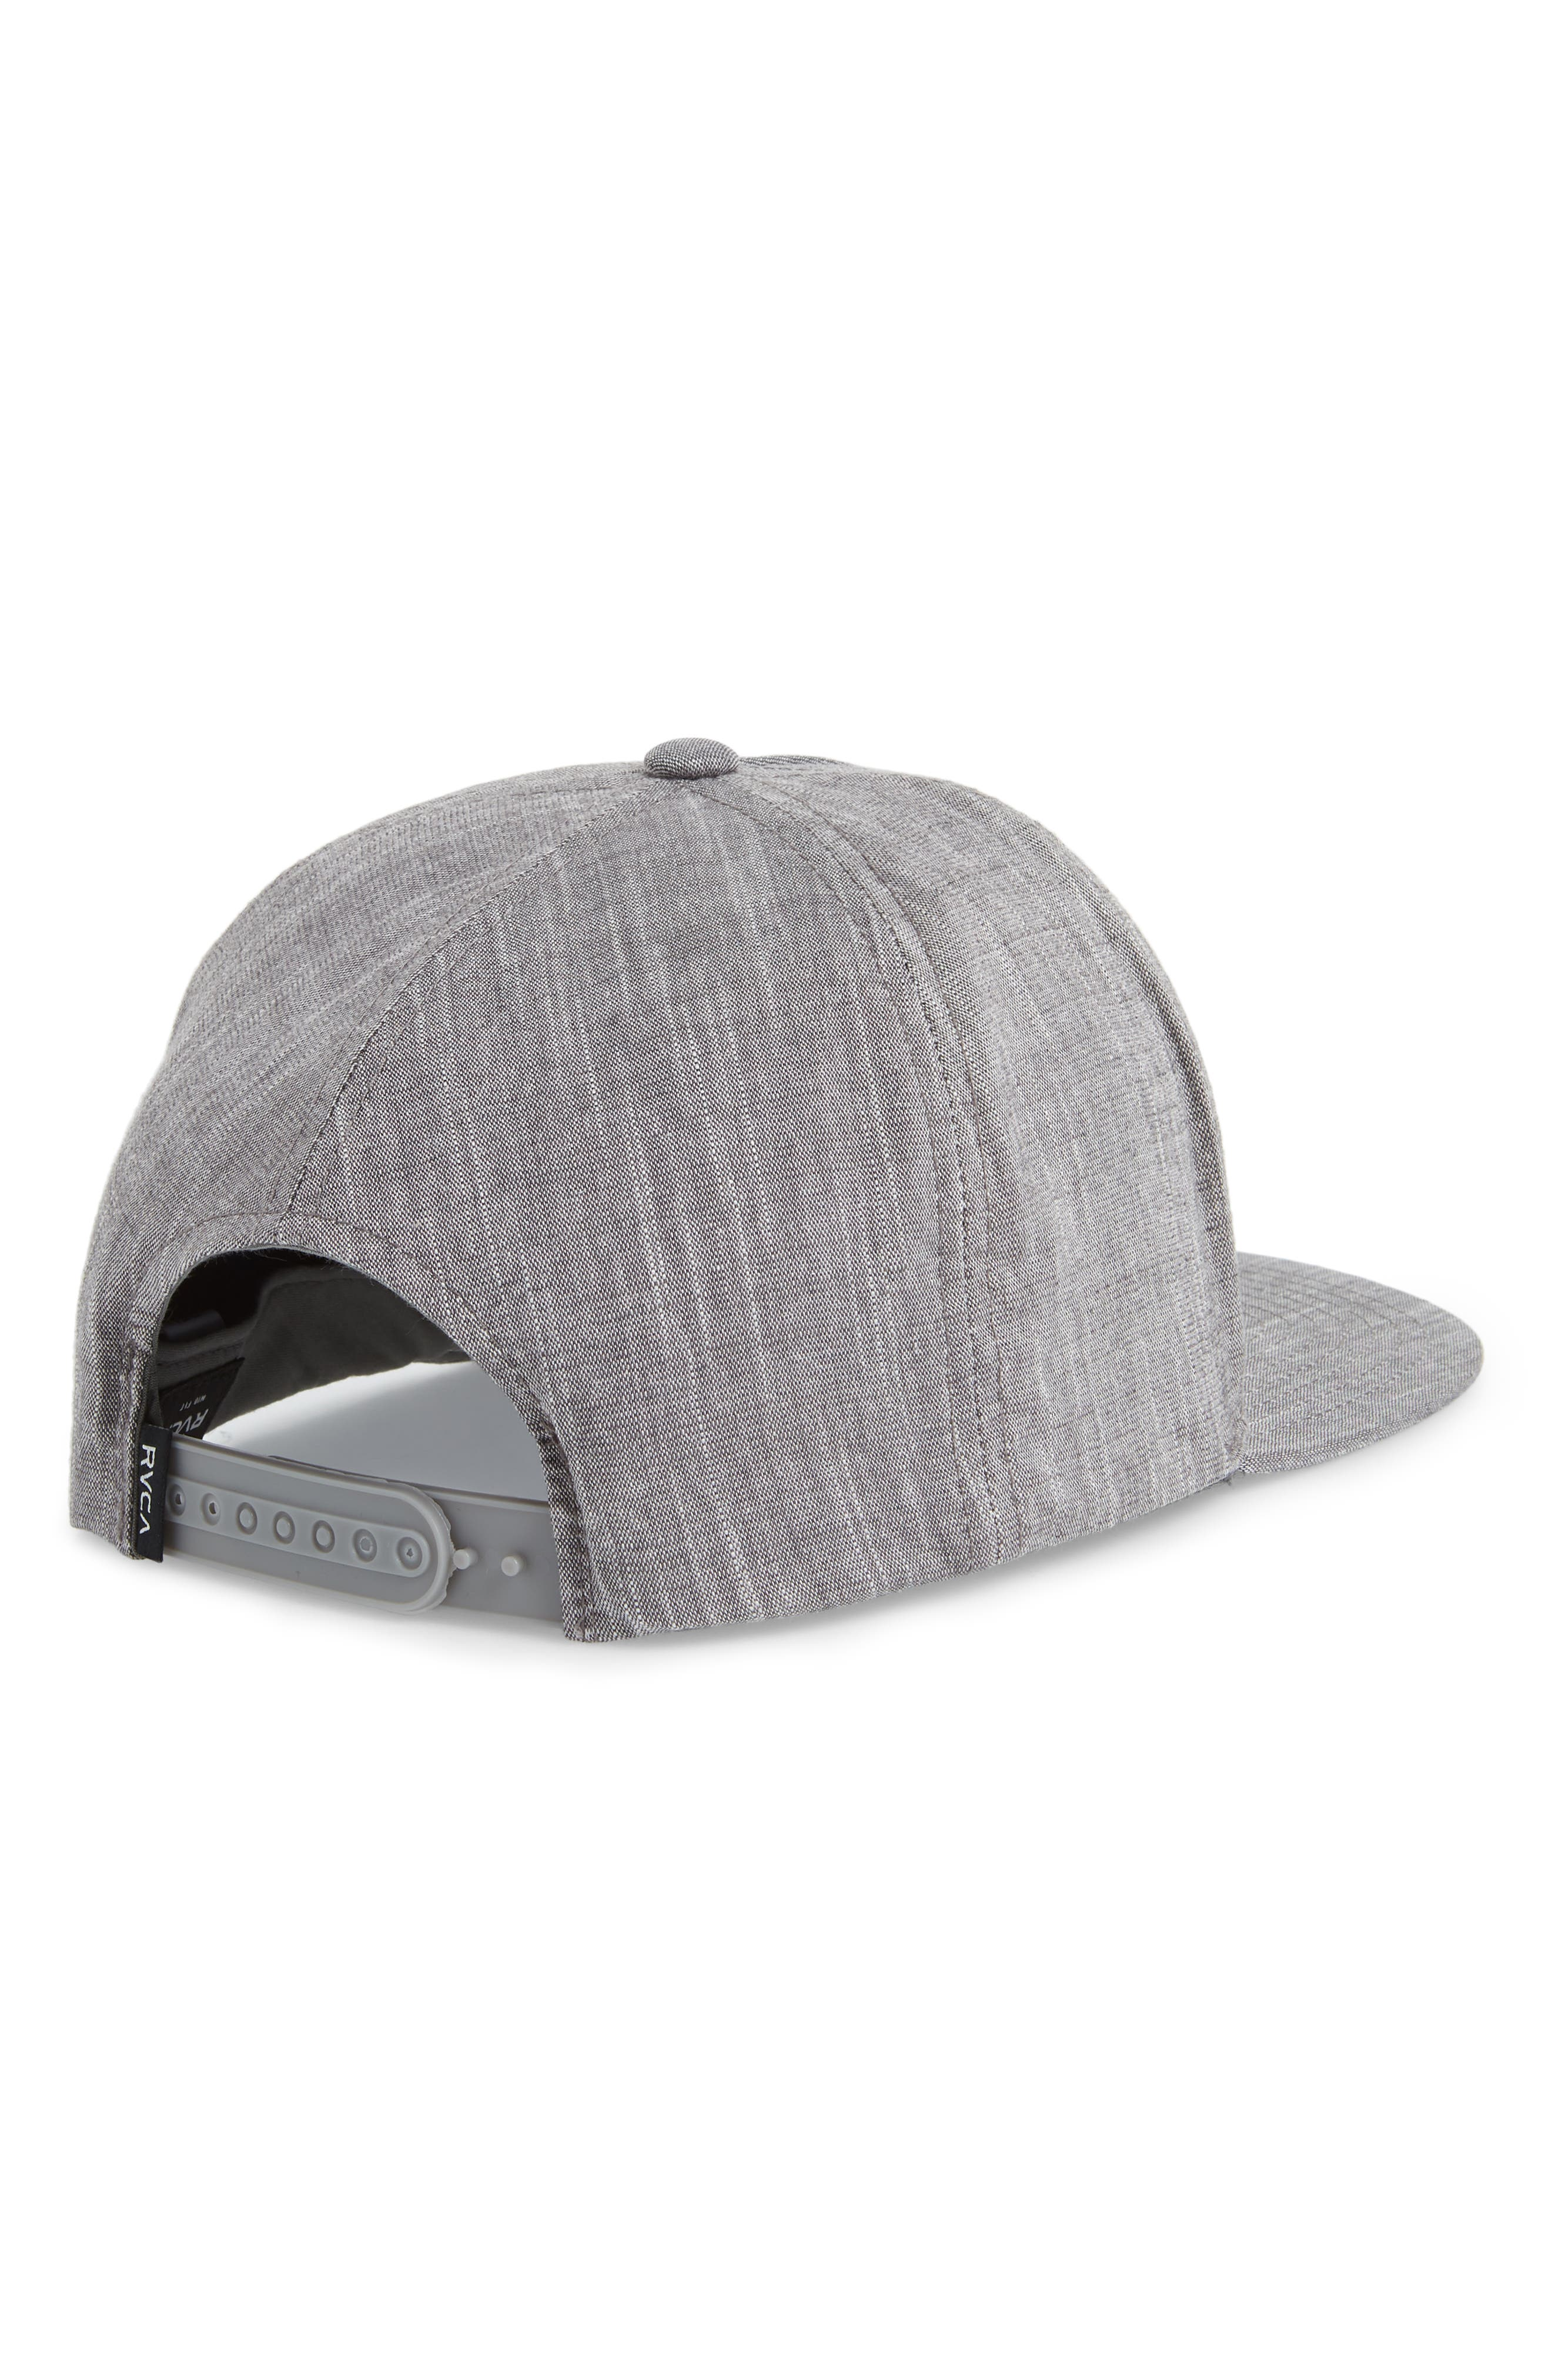 Finley Snapback Cap,                             Alternate thumbnail 2, color,                             Black Heather